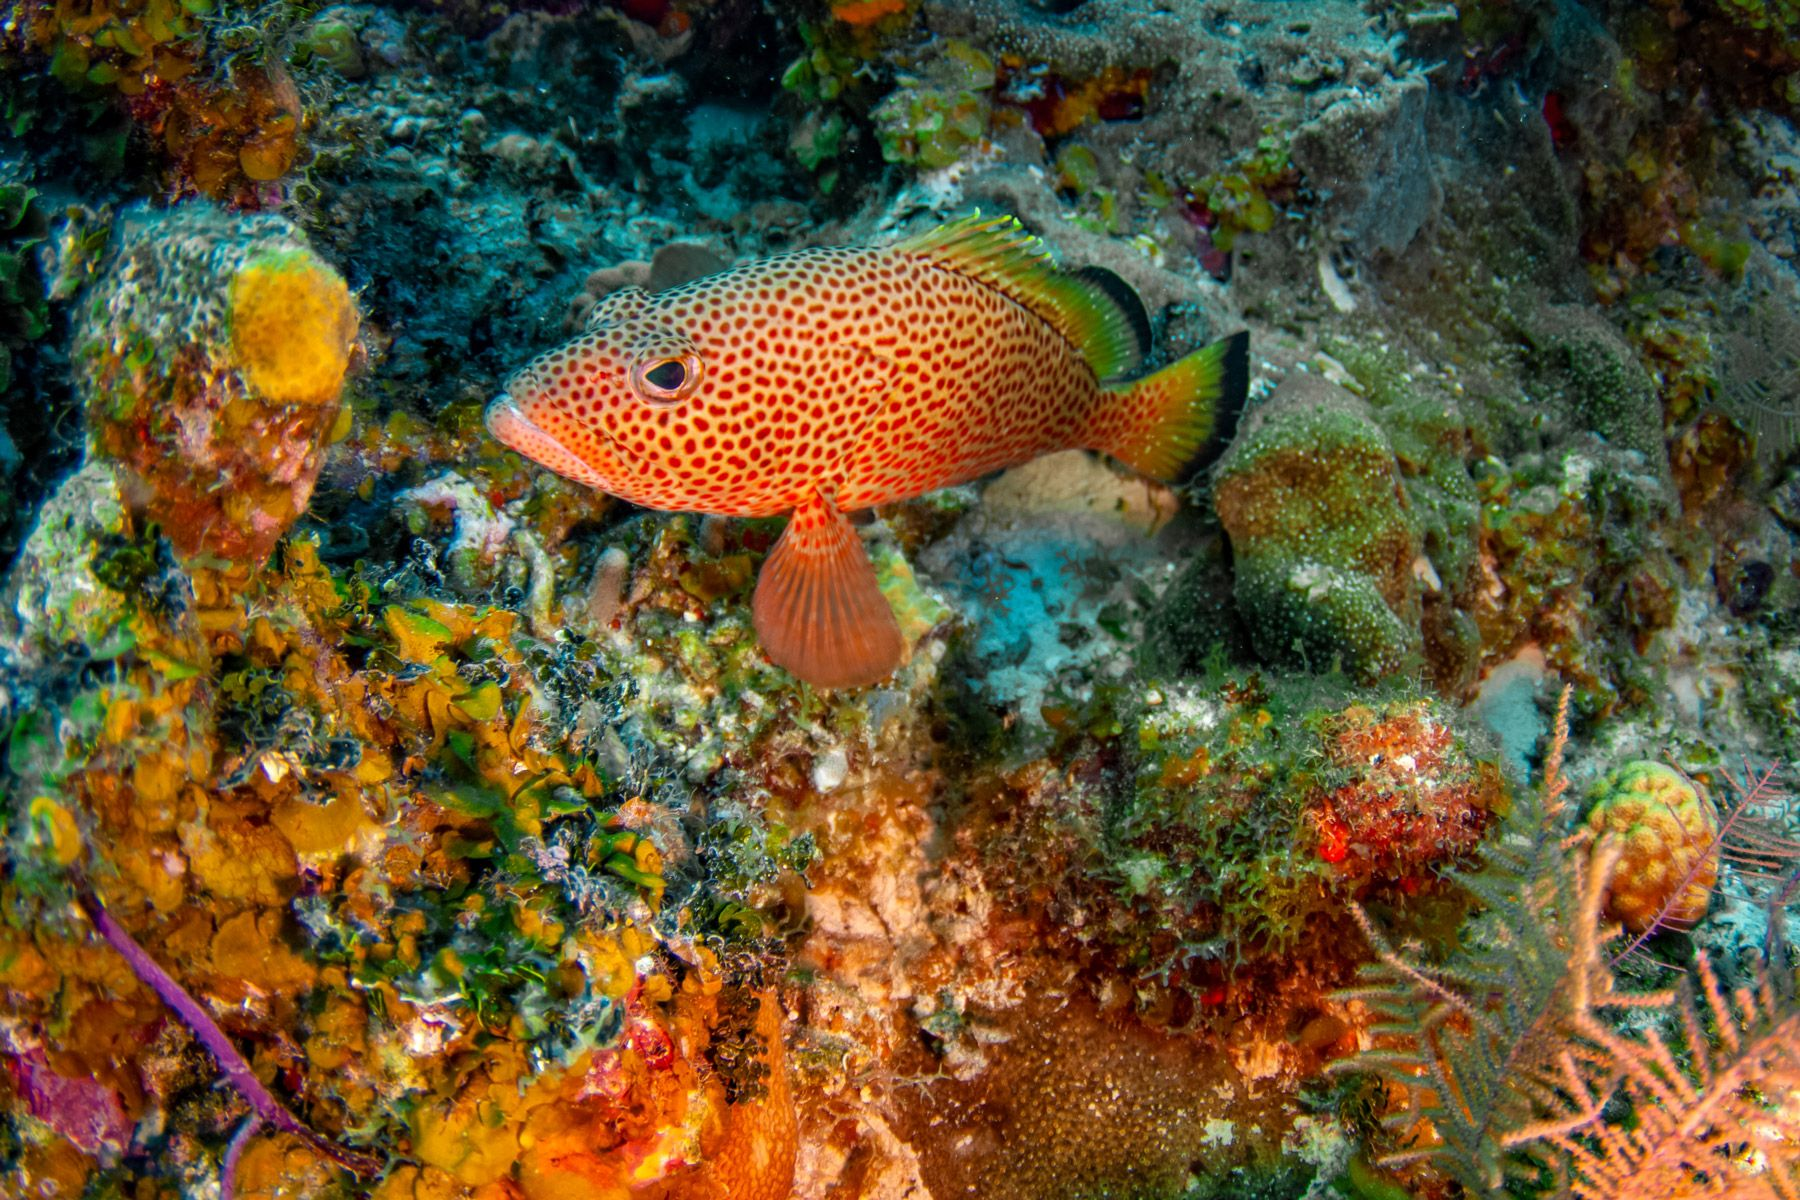 Red Hind grouper turks caicos